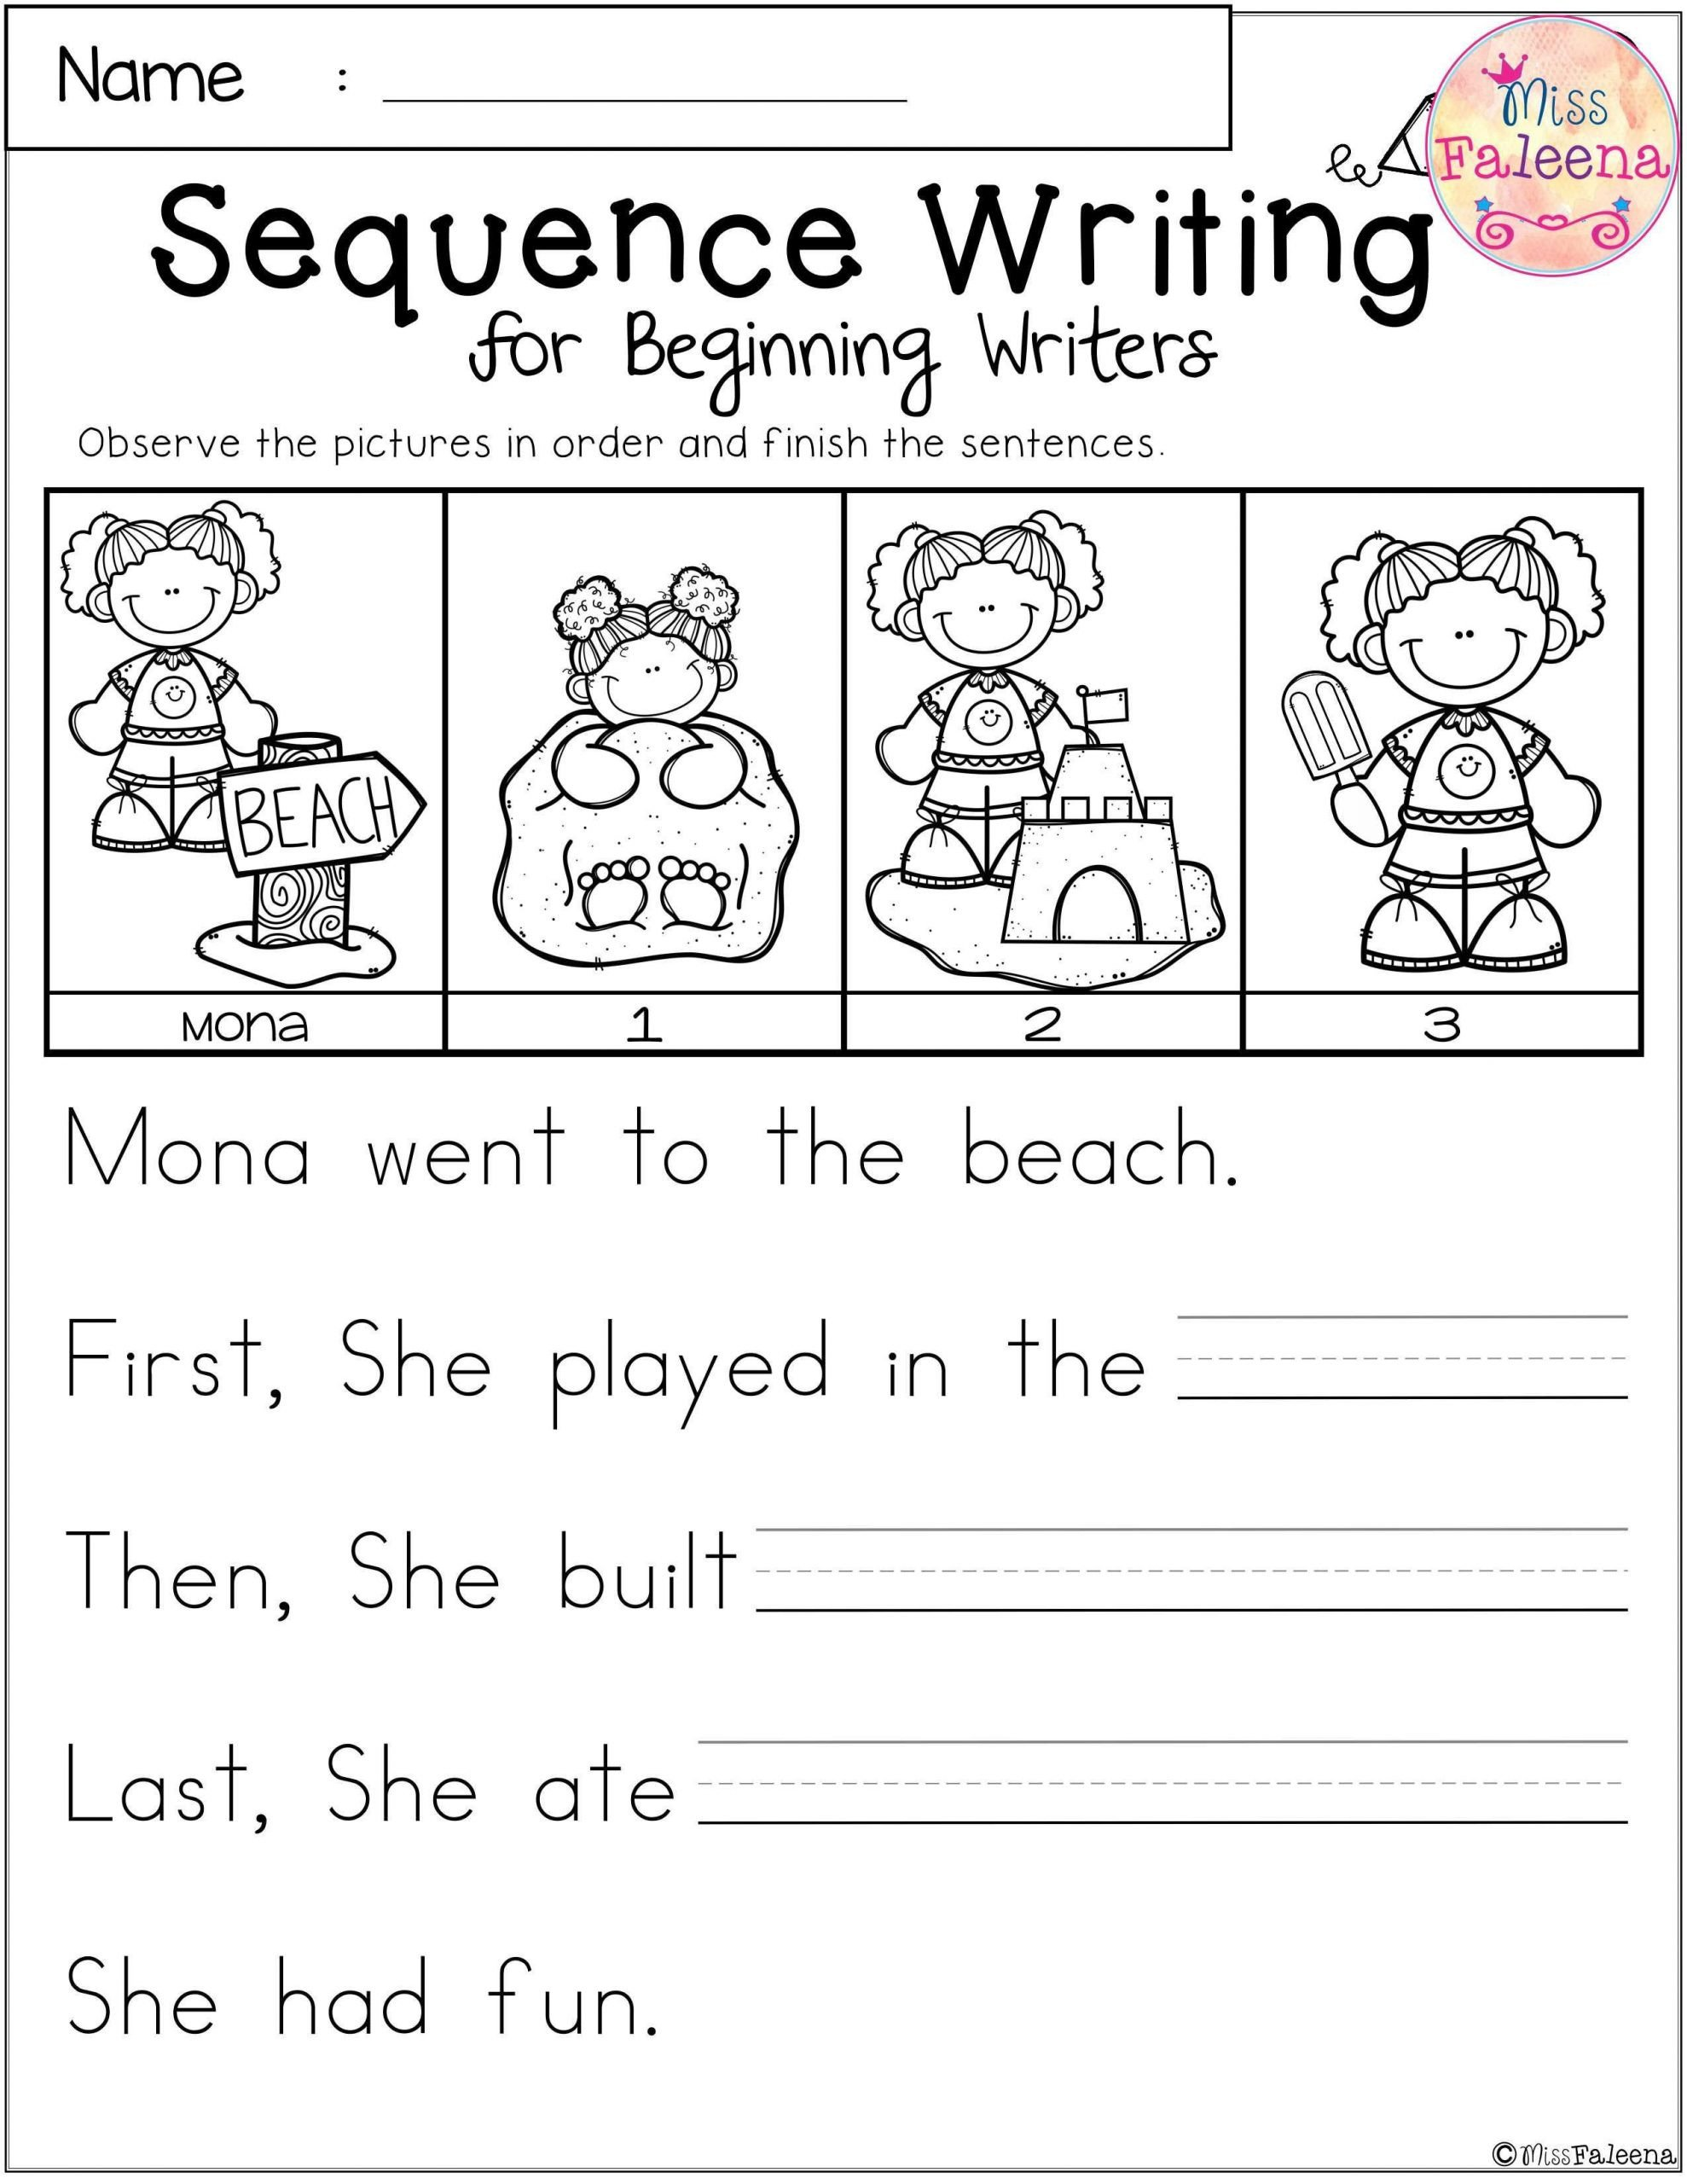 Sequence Worksheets 5th Grade 20 Sequencing Worksheets for Kindergarten